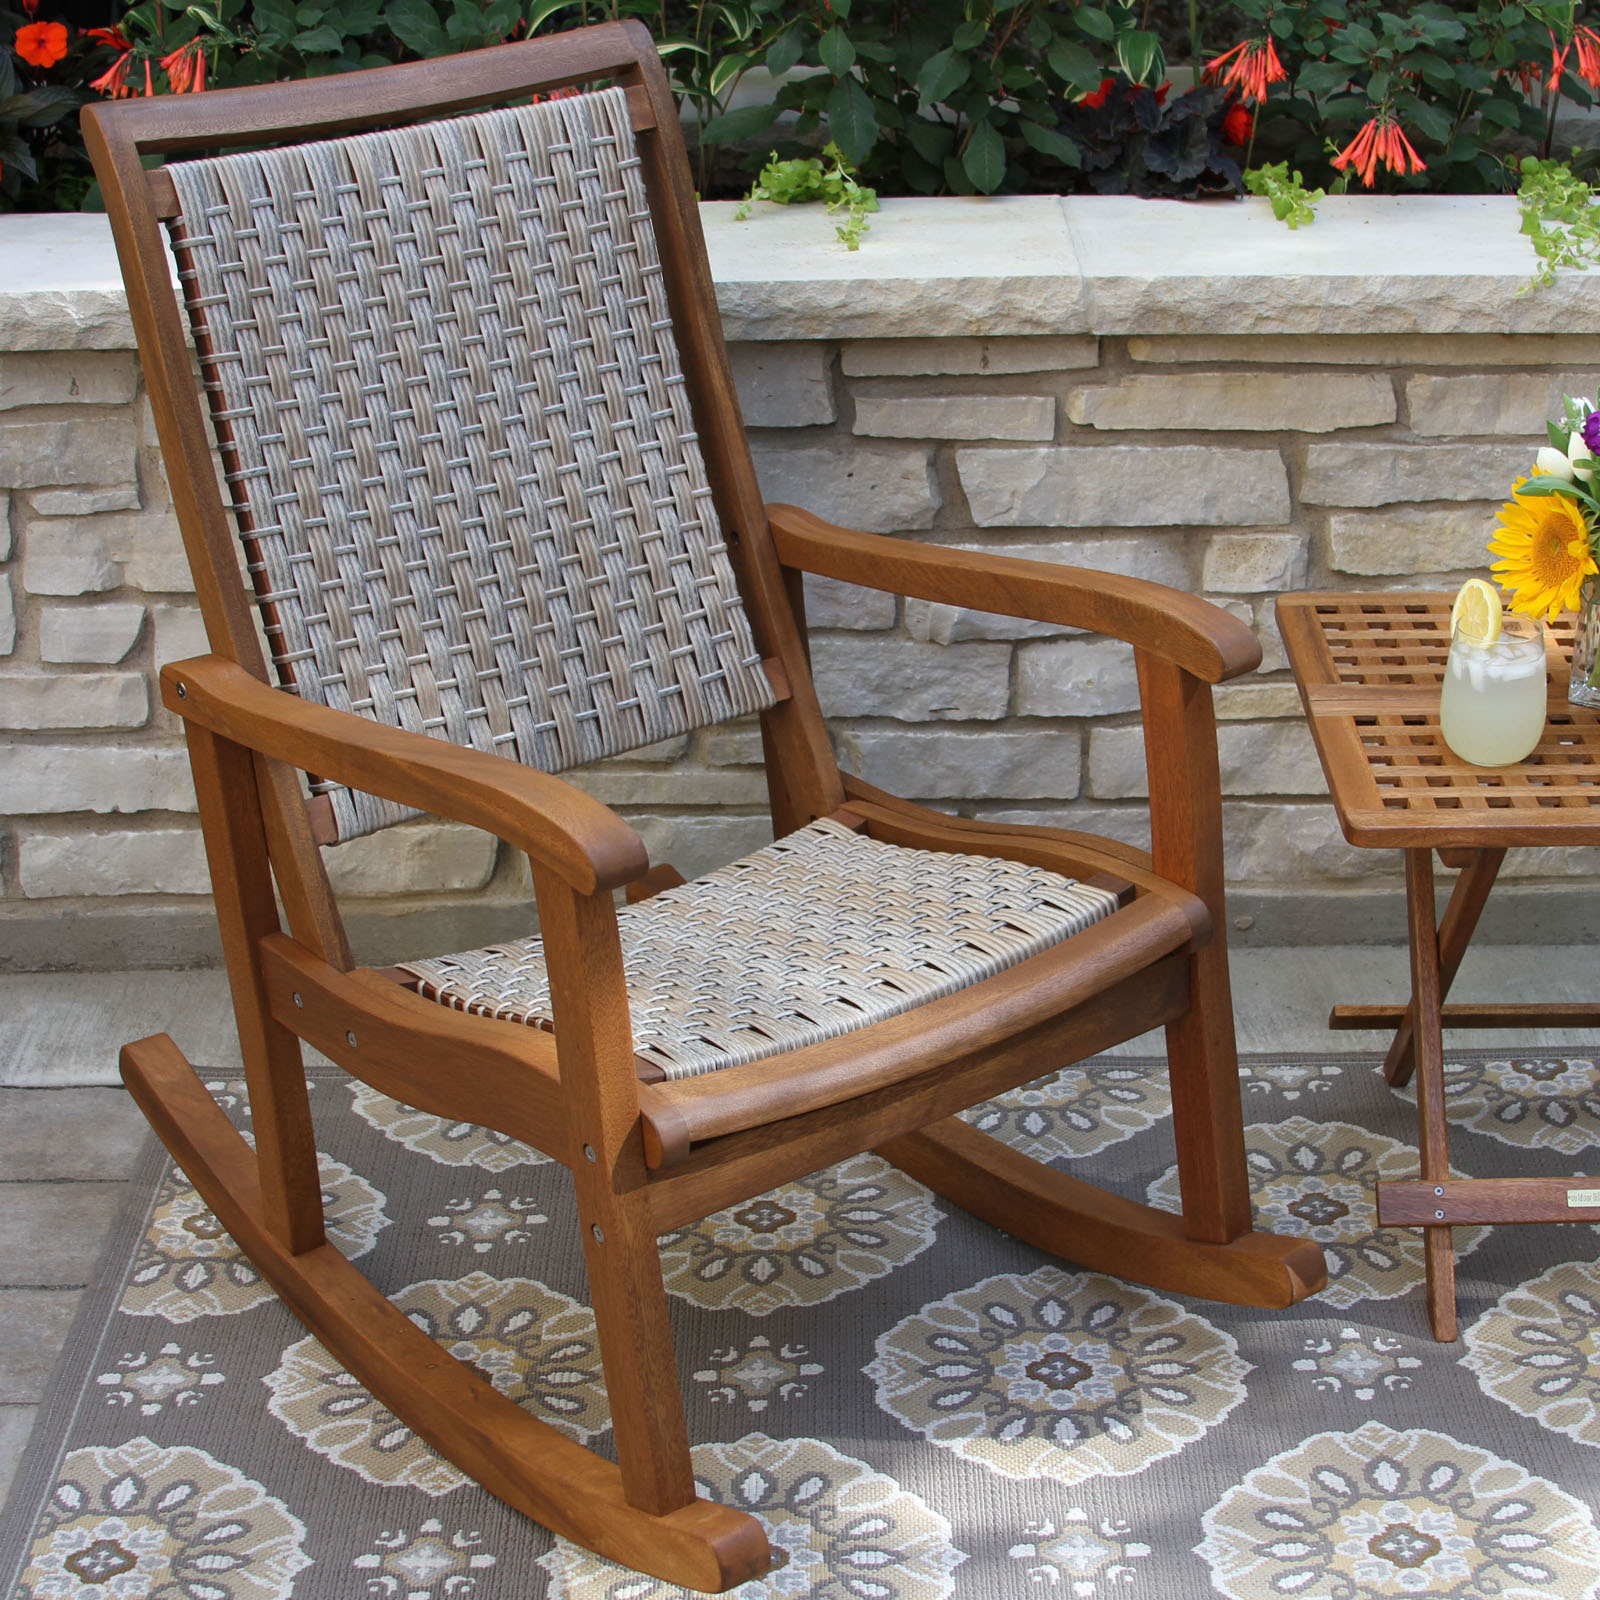 POLYWOOD Jefferson Recycled Plastic Rocking Chair with Woven Seat